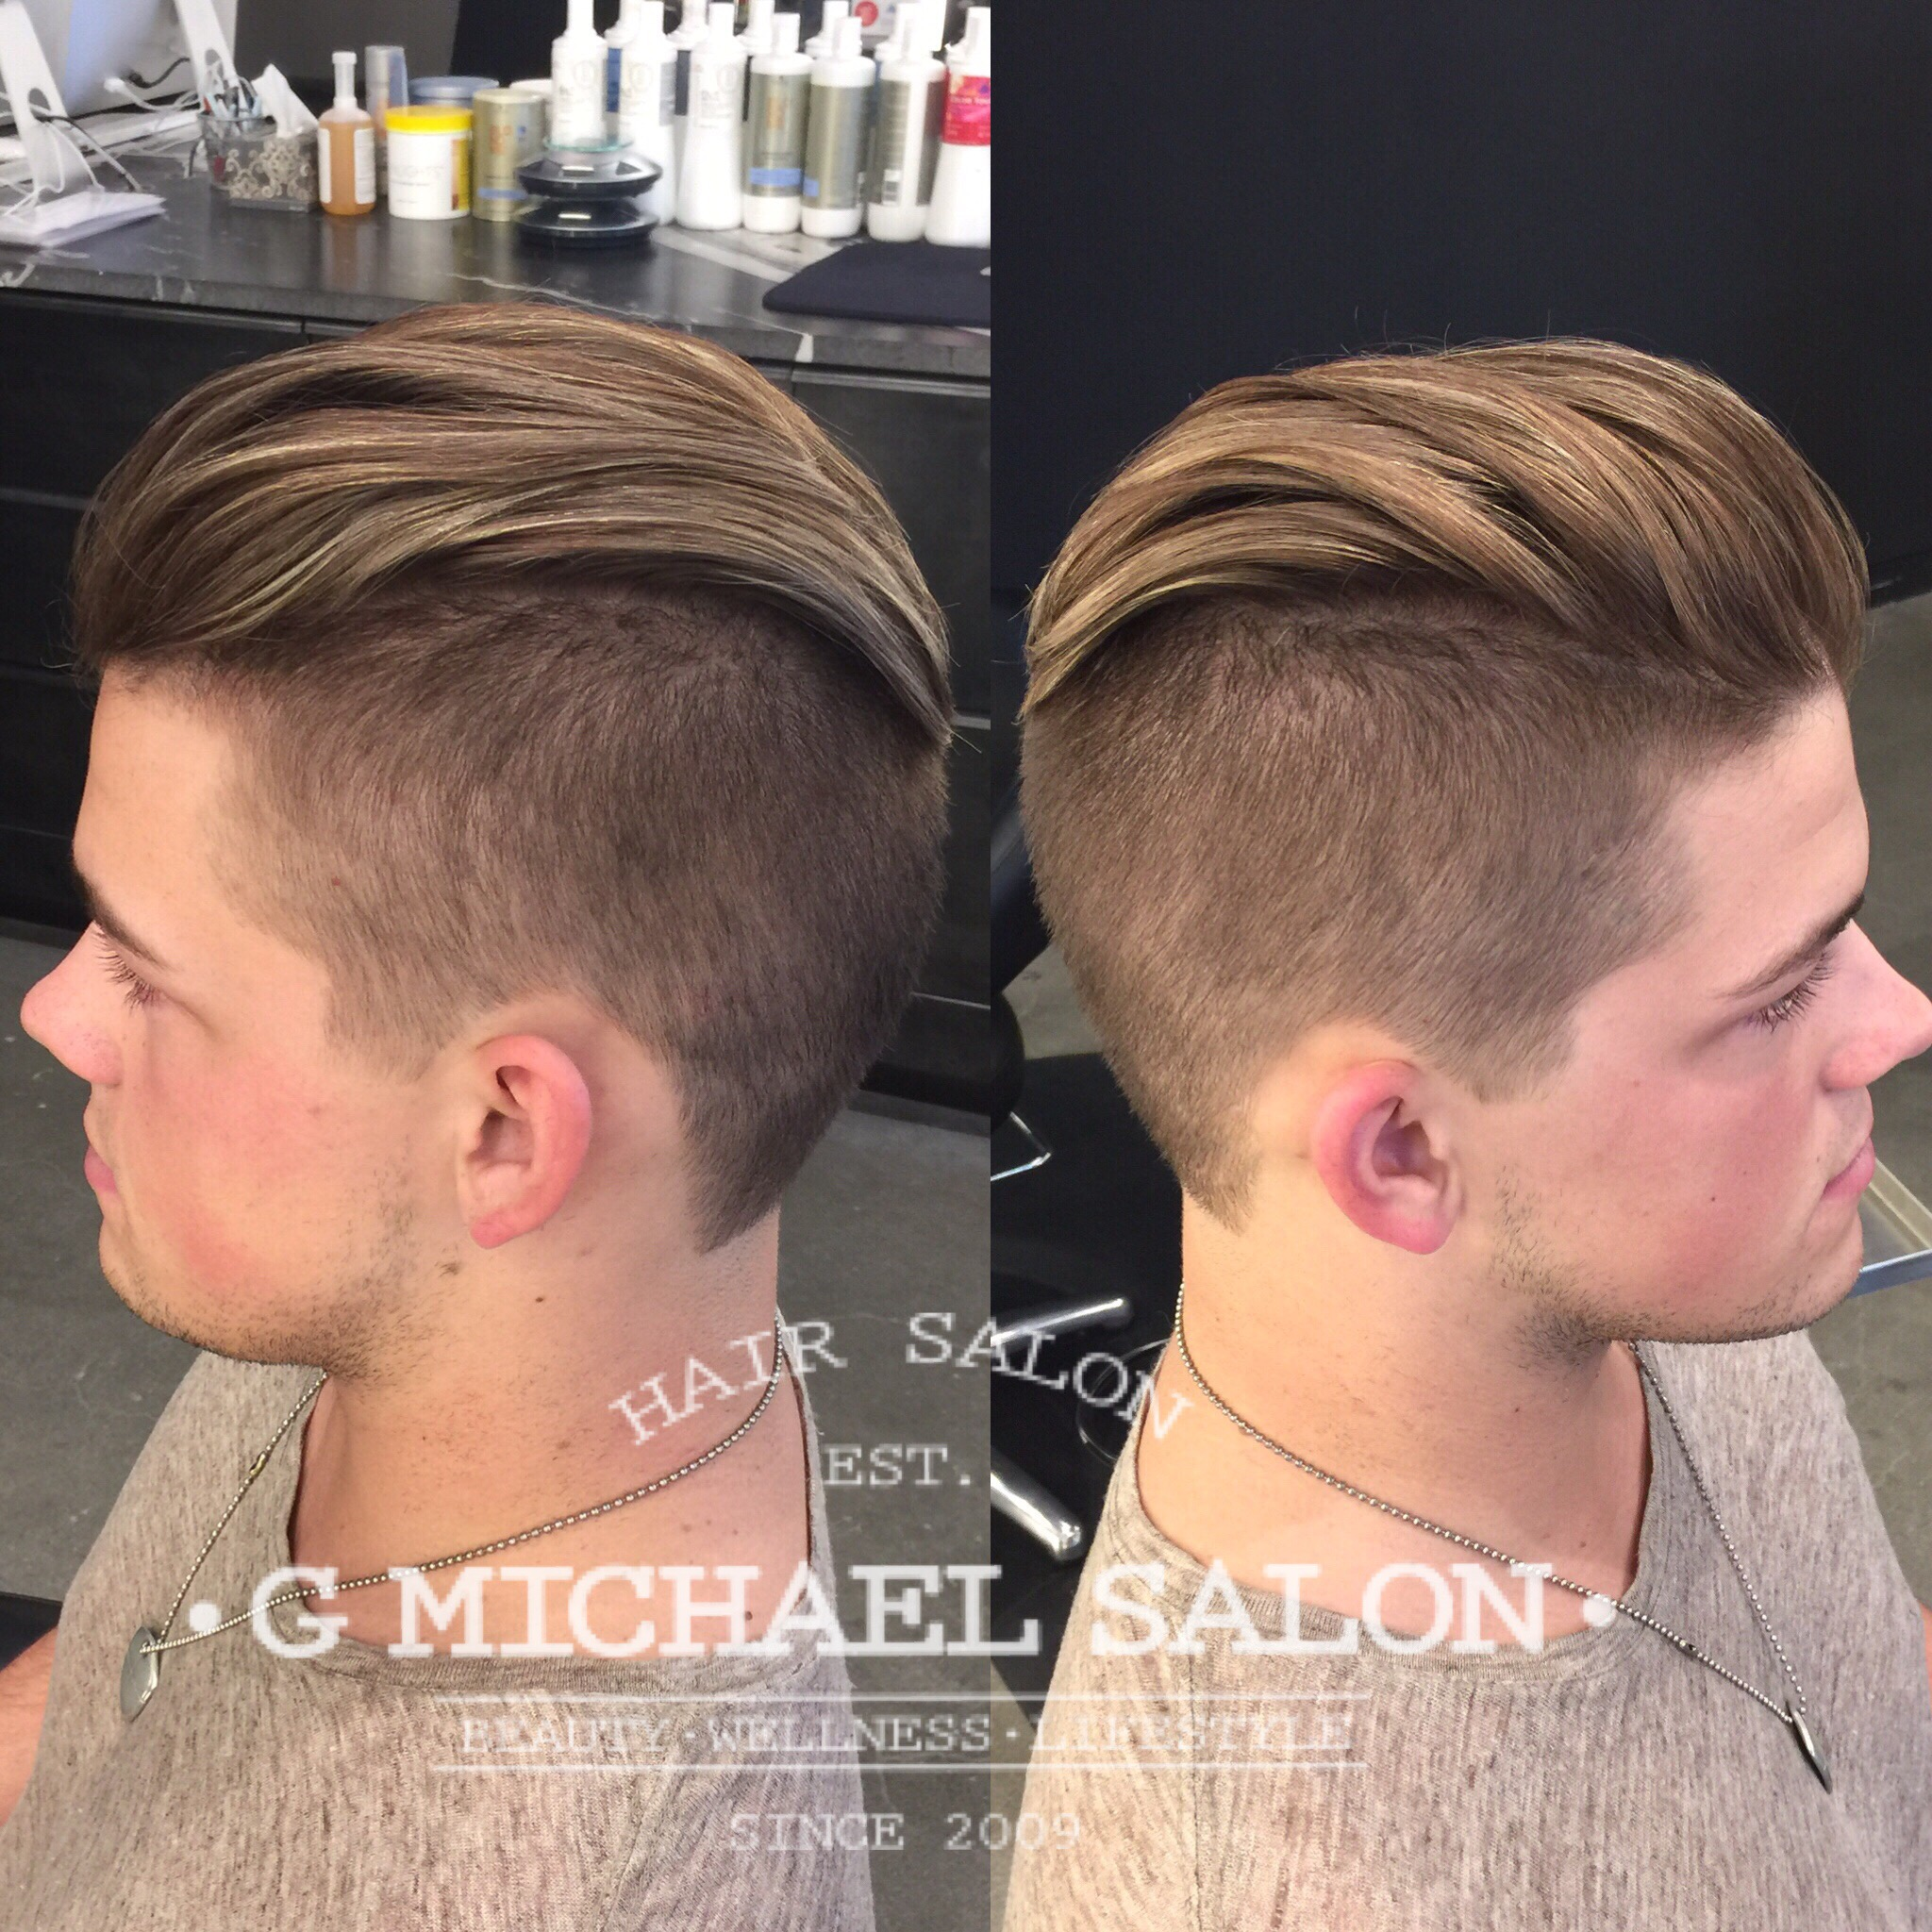 Top Men S Haircut Salons In Indianapolis Indiana Created By G